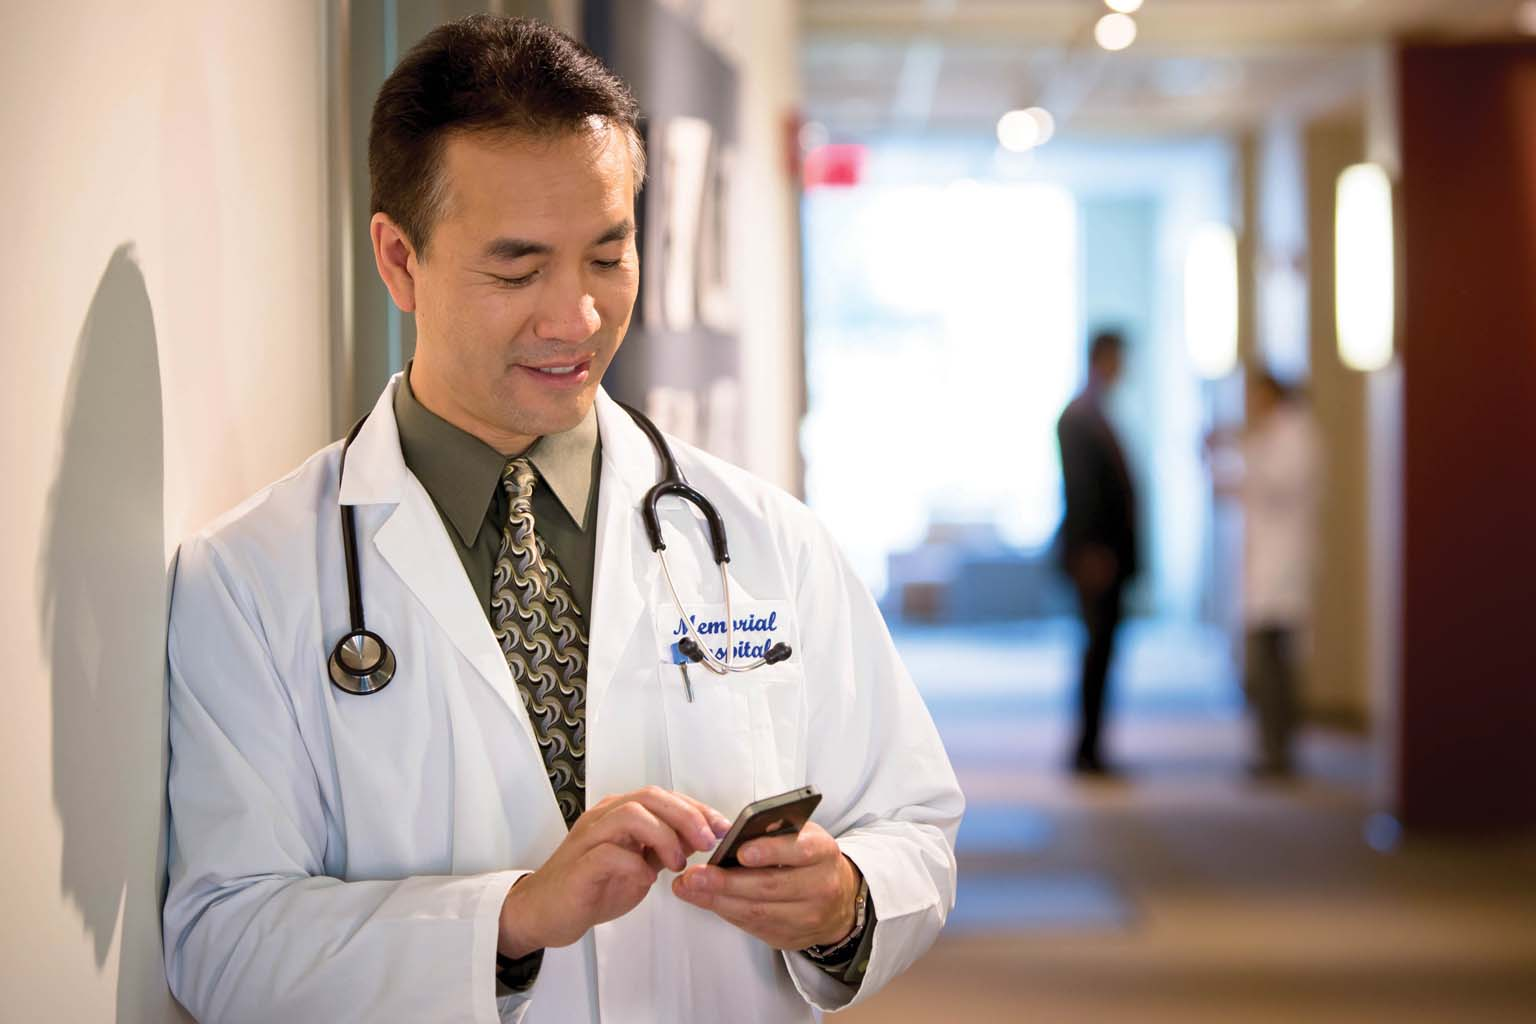 doctor paused in hallway looking at smartphone